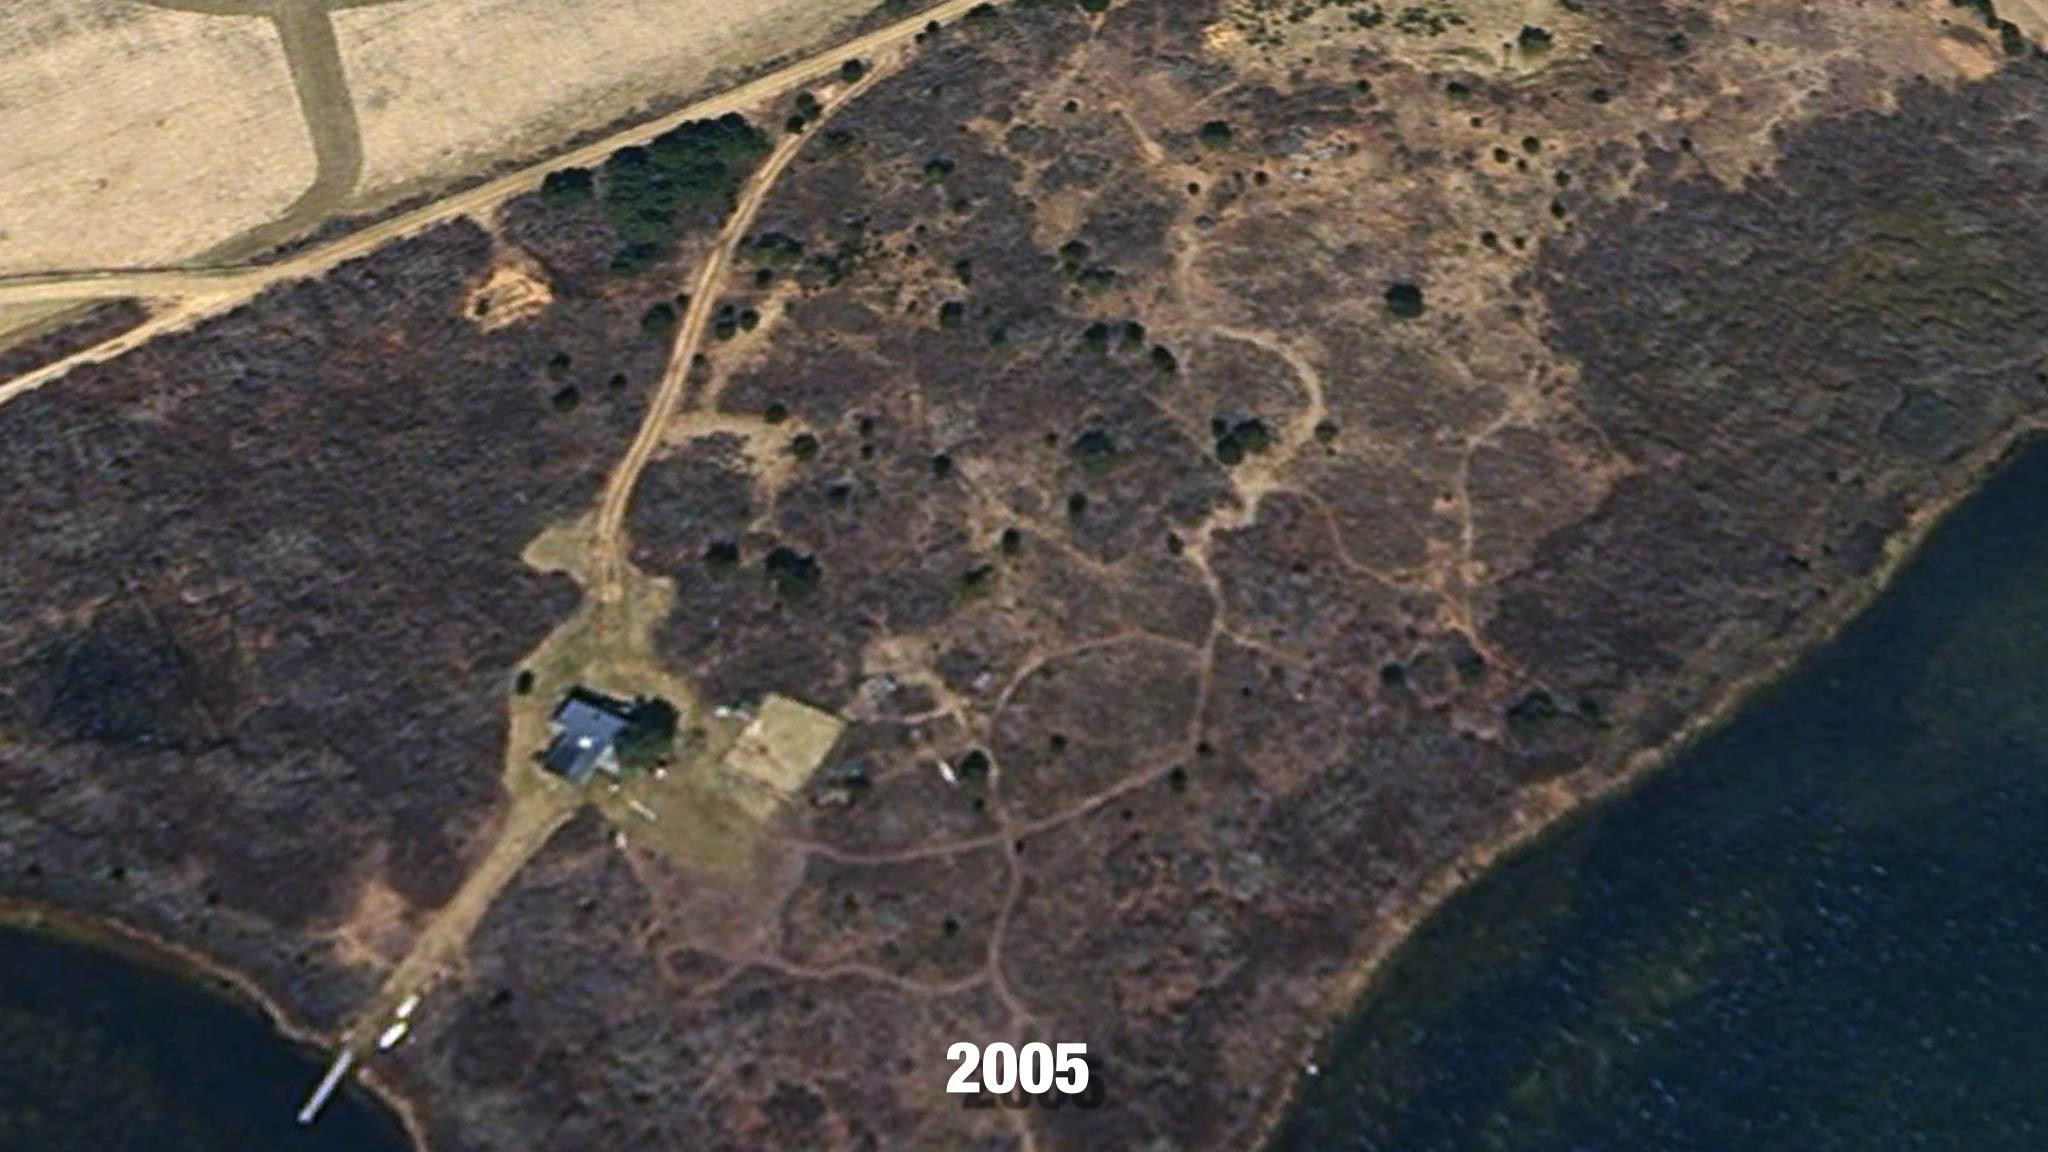 OBH_B&A_MV_Satellite_01_Before_Year--Credit_Google_Earth.jpg